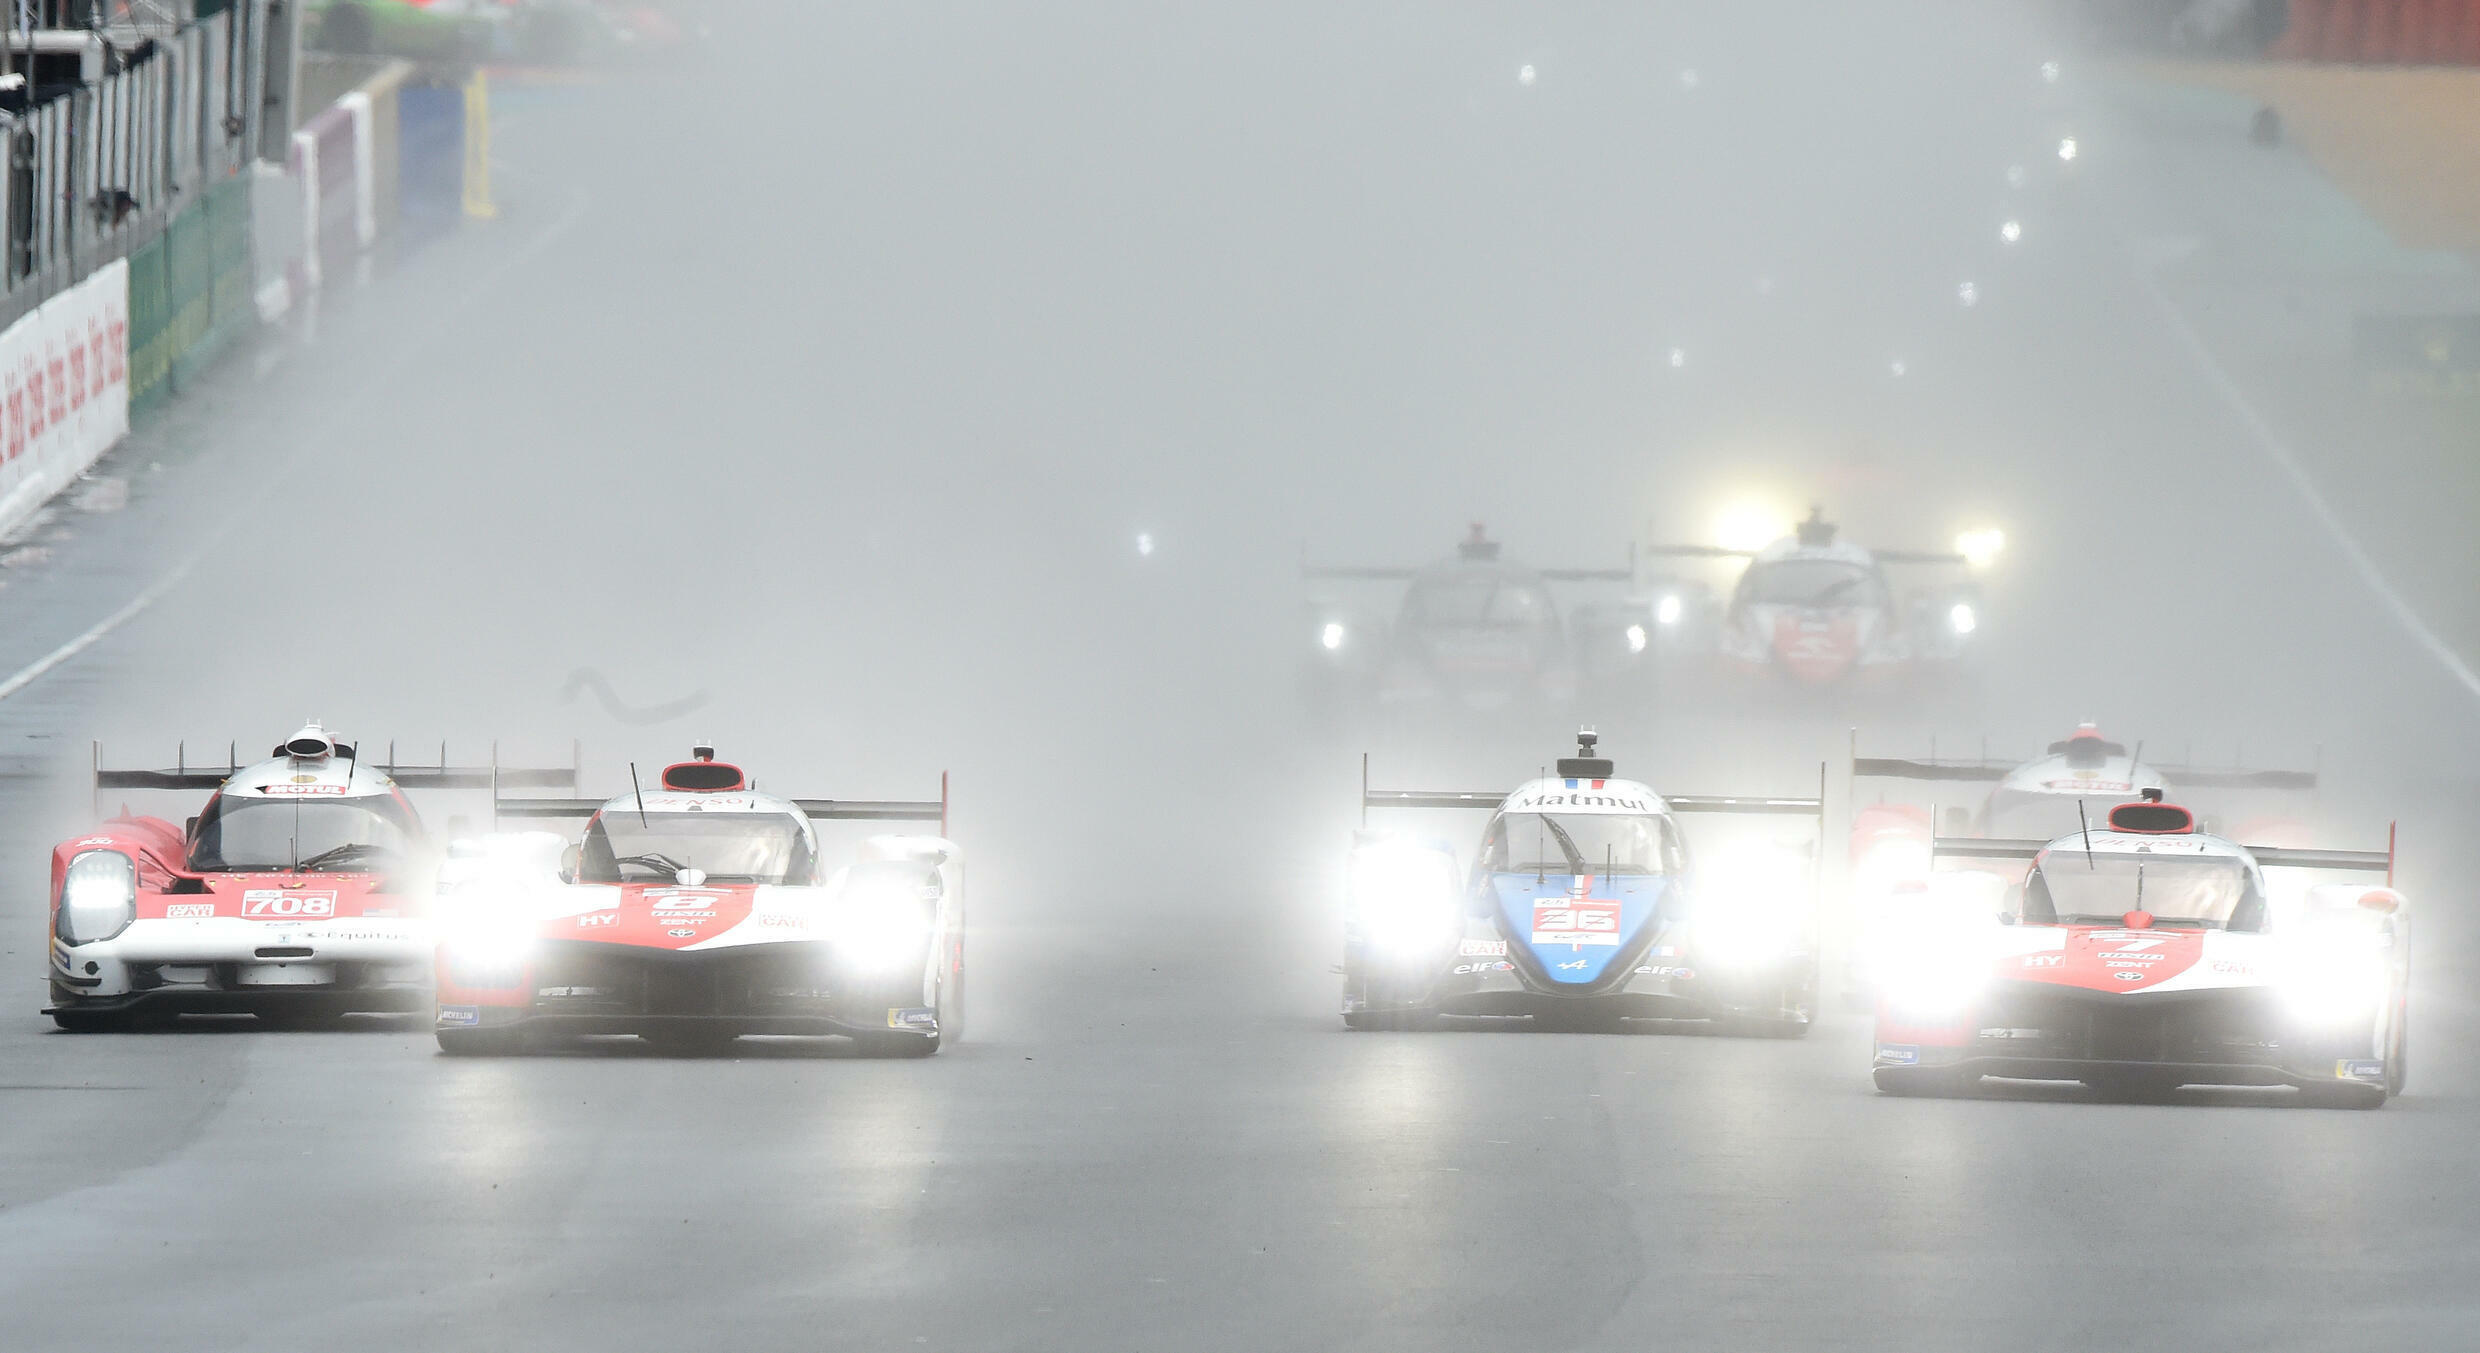 Wet start for the Le Mans grid on Saturday